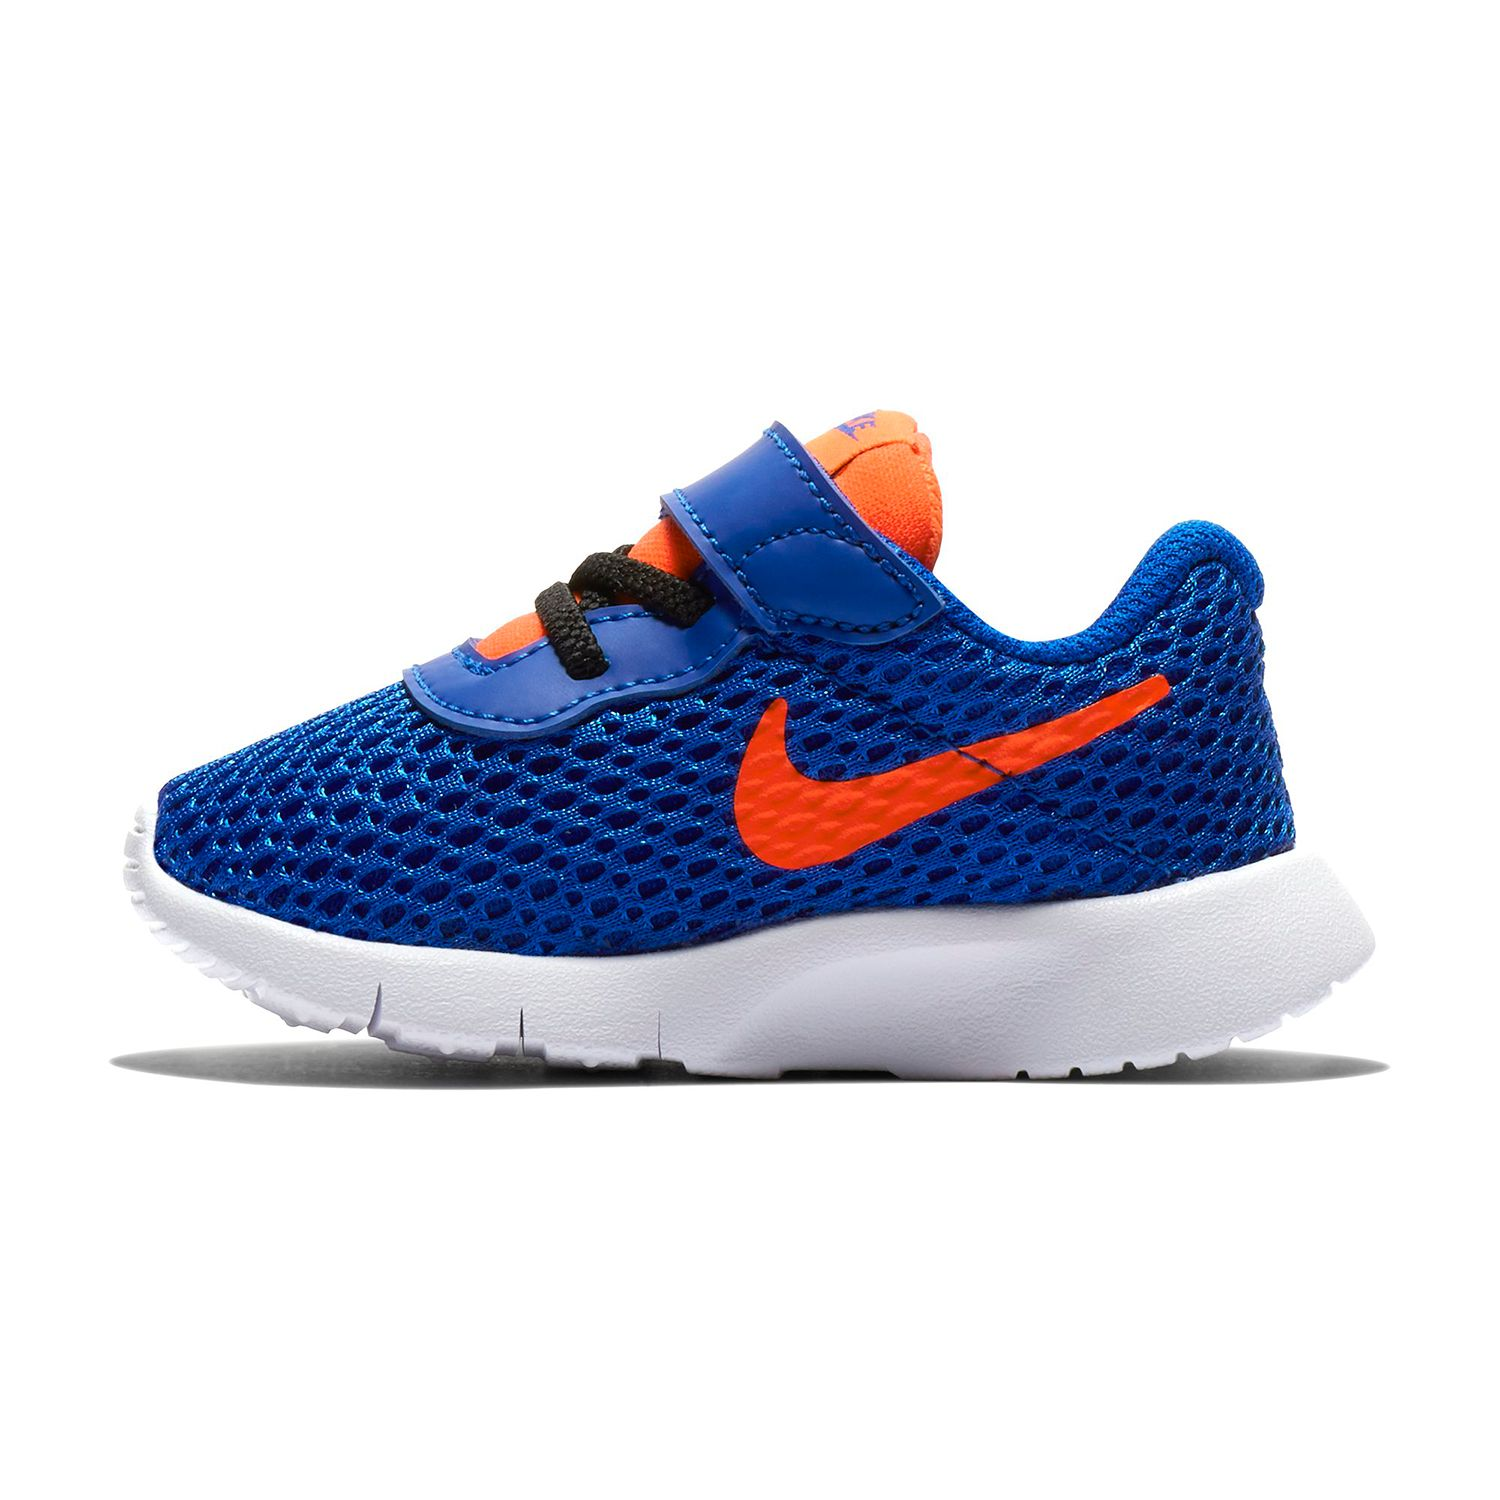 3a29c17090c4 Toddler Nike Shoes